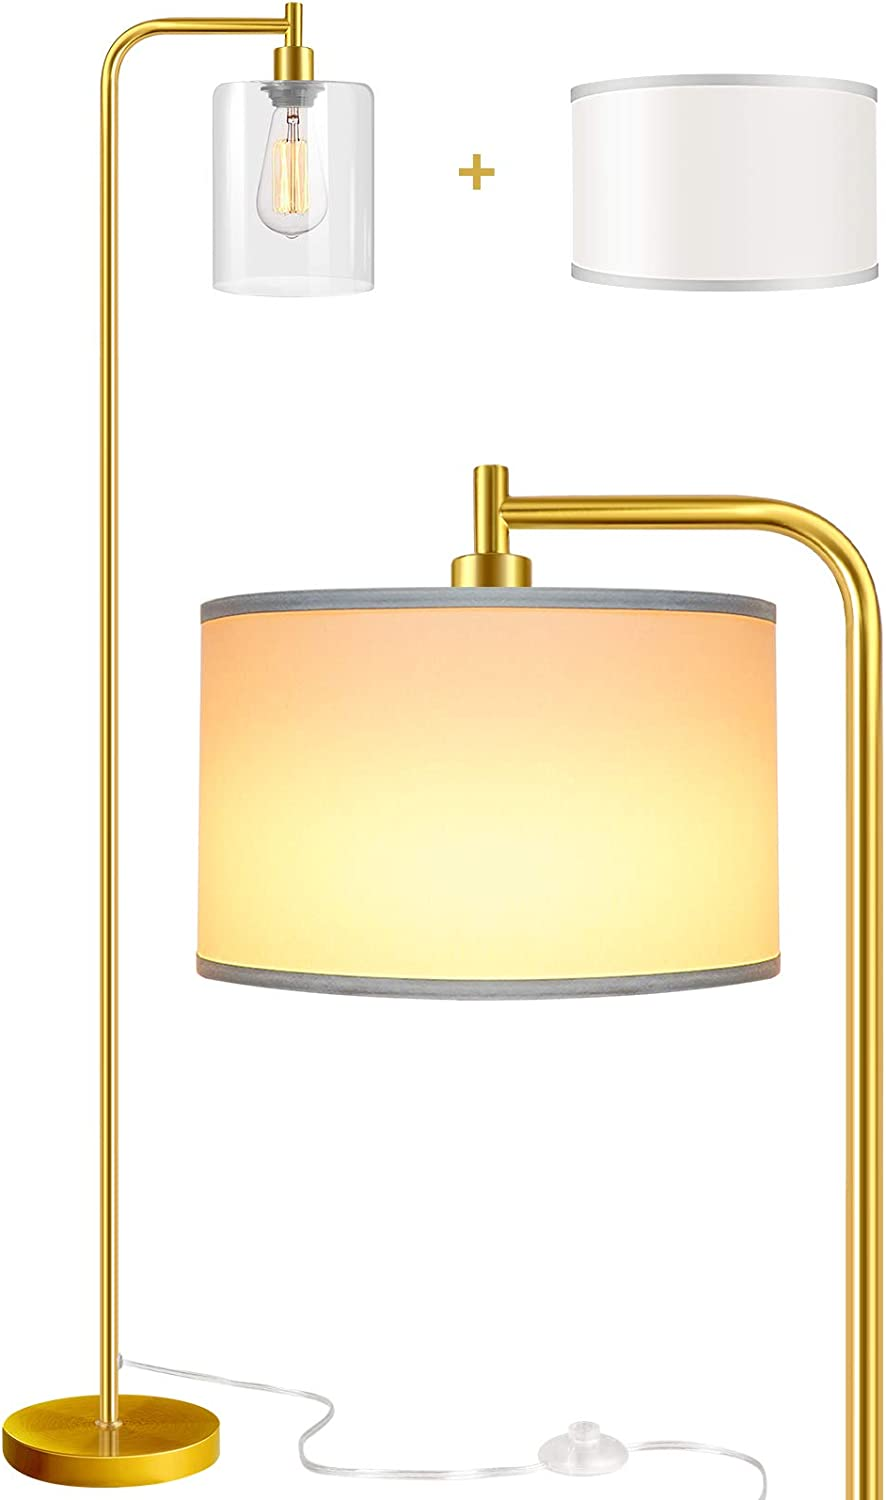 Qimh Floor Lamp with 2 Lamp Shades (Glass,Beige) & Edison Bulb,Indoor Pole Light to Match Living Room,Bedroom in Farmhouse, Vintage, or Rustic Style - Standing, Tall Lighting (Gold)